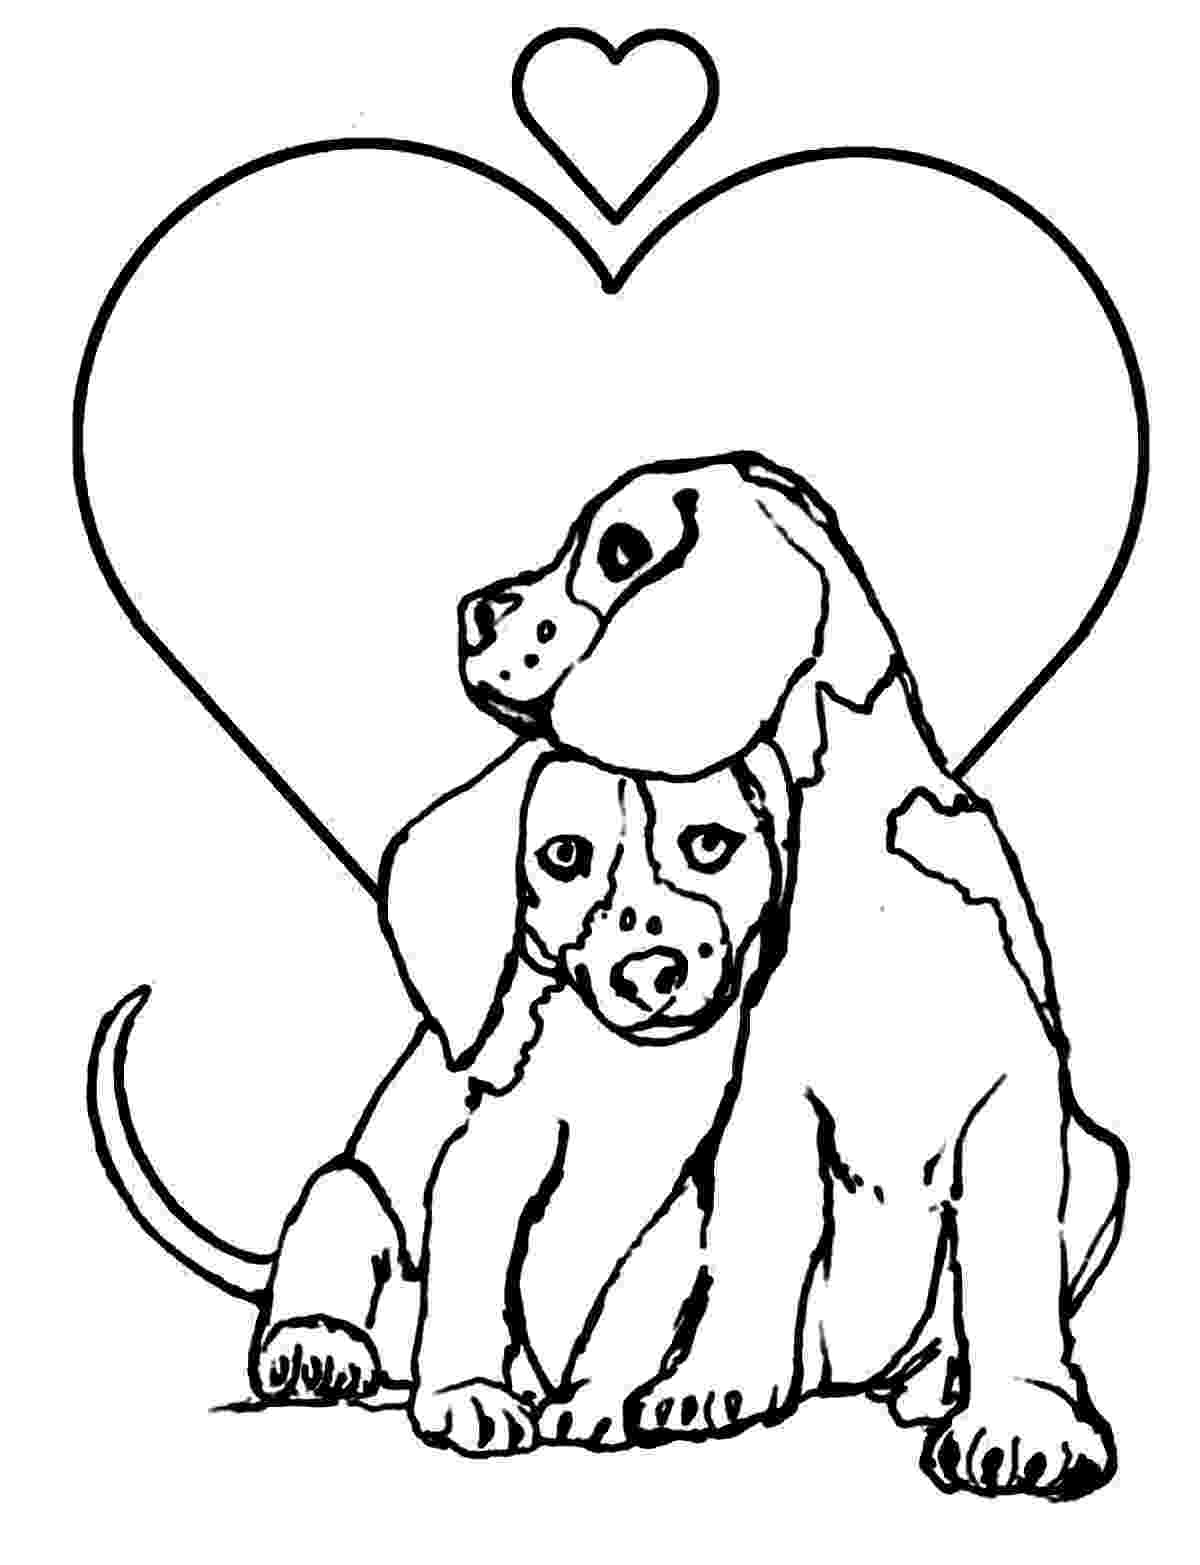 printable coloring pages dogs dogs to download for free dogs kids coloring pages printable pages coloring dogs